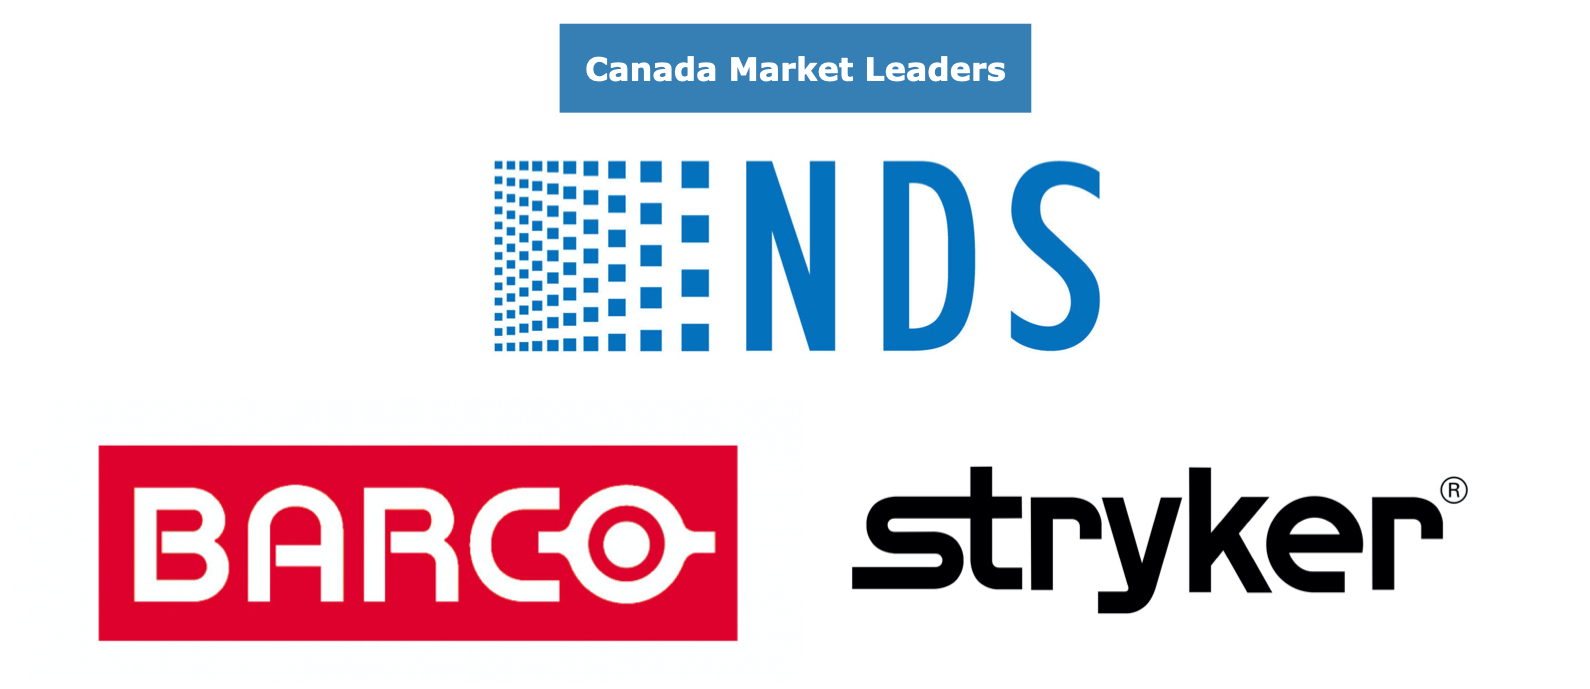 Canadian Operating Equipment Market Share Leaders